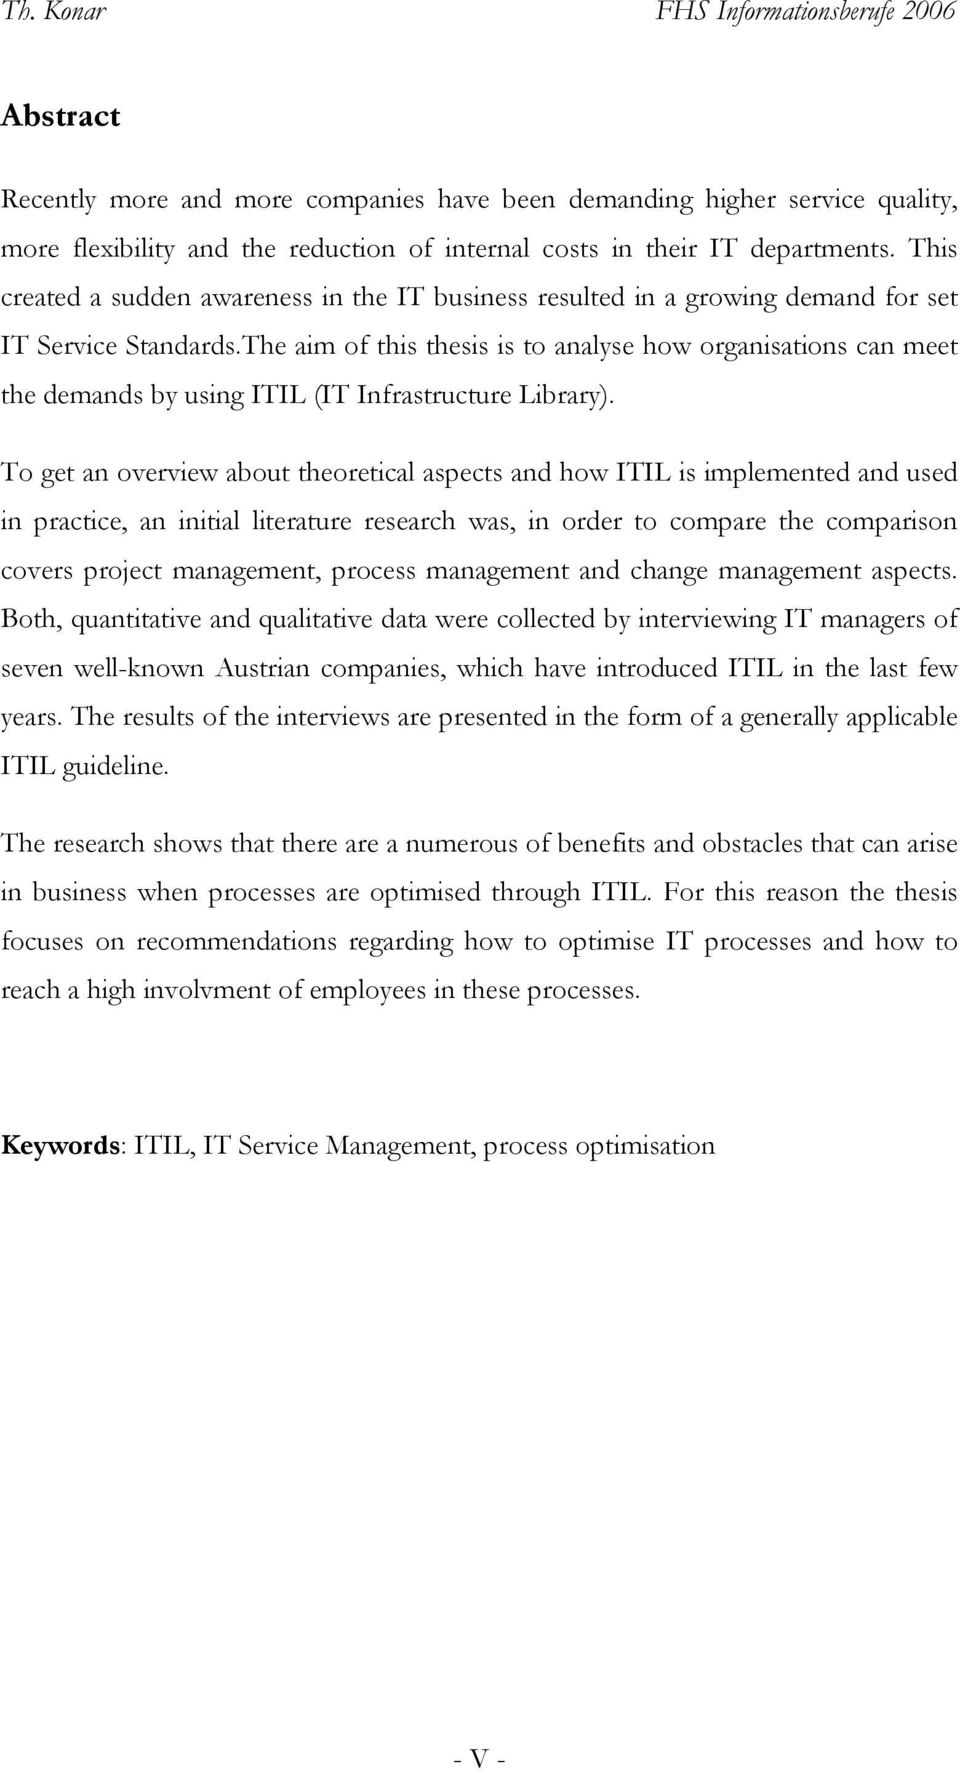 The aim of this thesis is to analyse how organisations can meet the demands by using ITIL (IT Infrastructure Library).